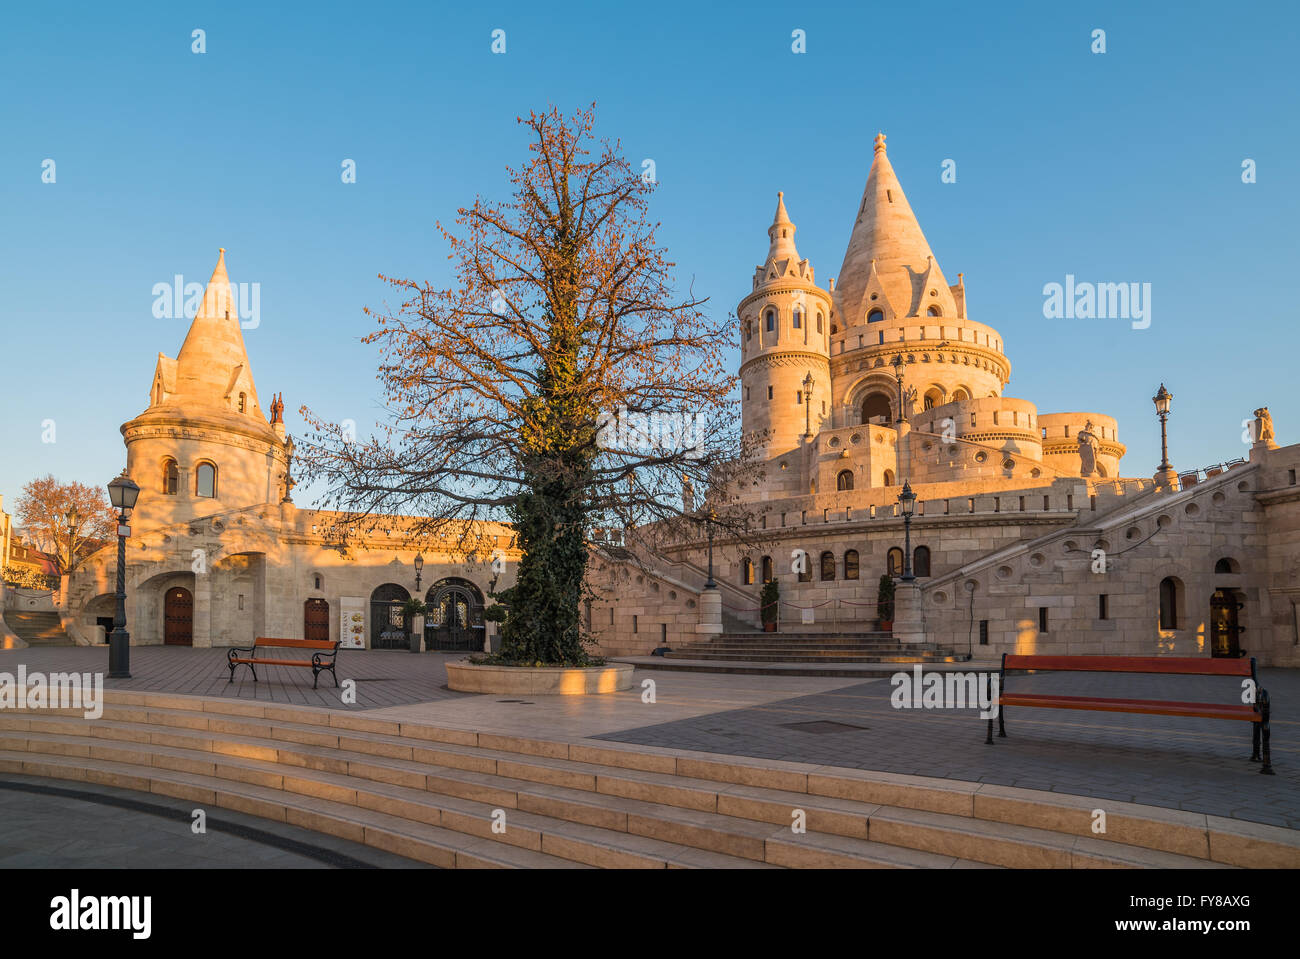 Fisherman's Bastion in Budapest, Hungary at Sunrise with Clear Blue Sky - Stock Image